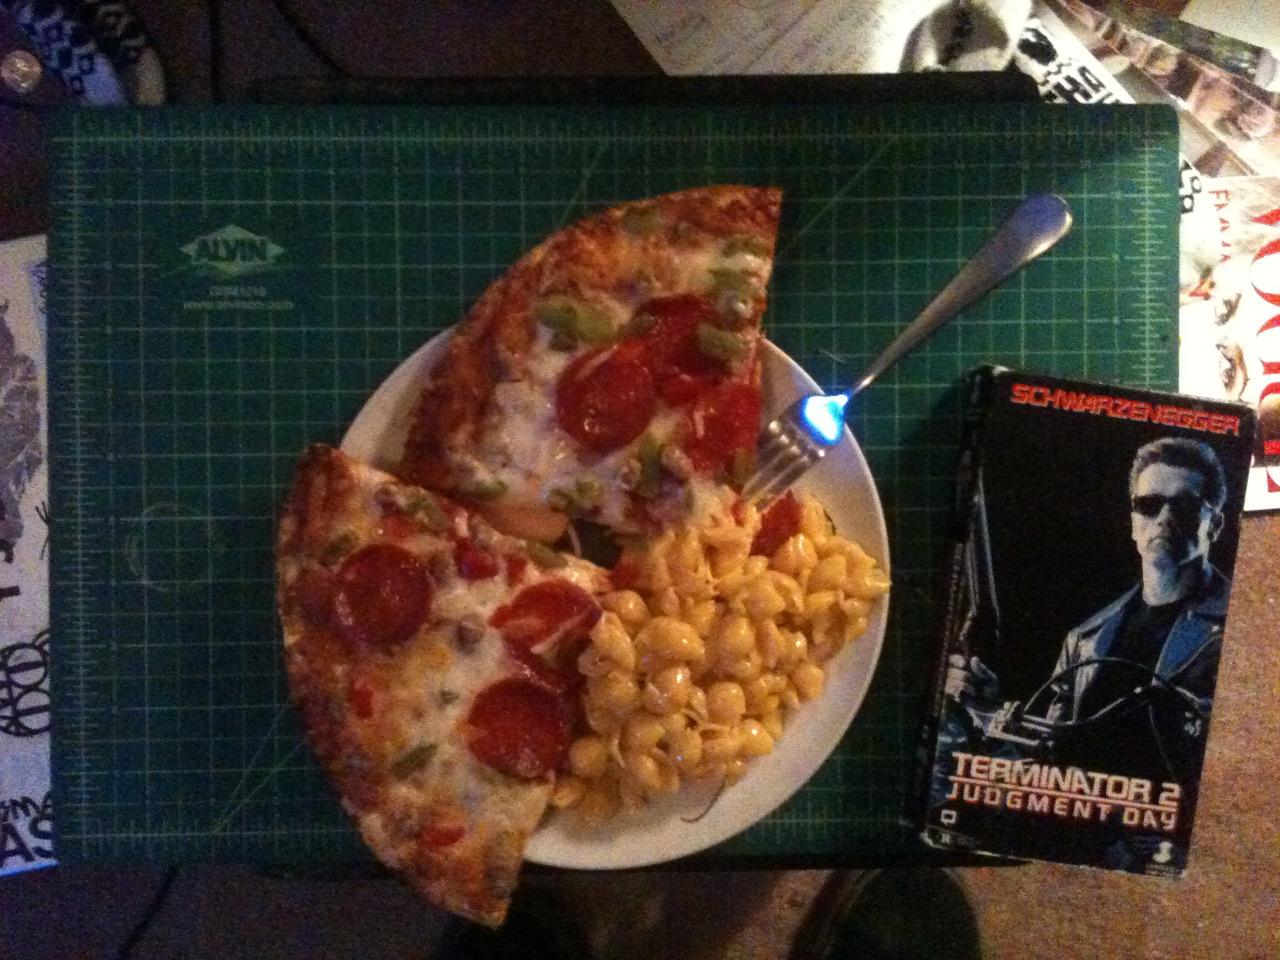 Pizza & velveeta + terminator 2 on VHS = how I'm spending my Monday night.